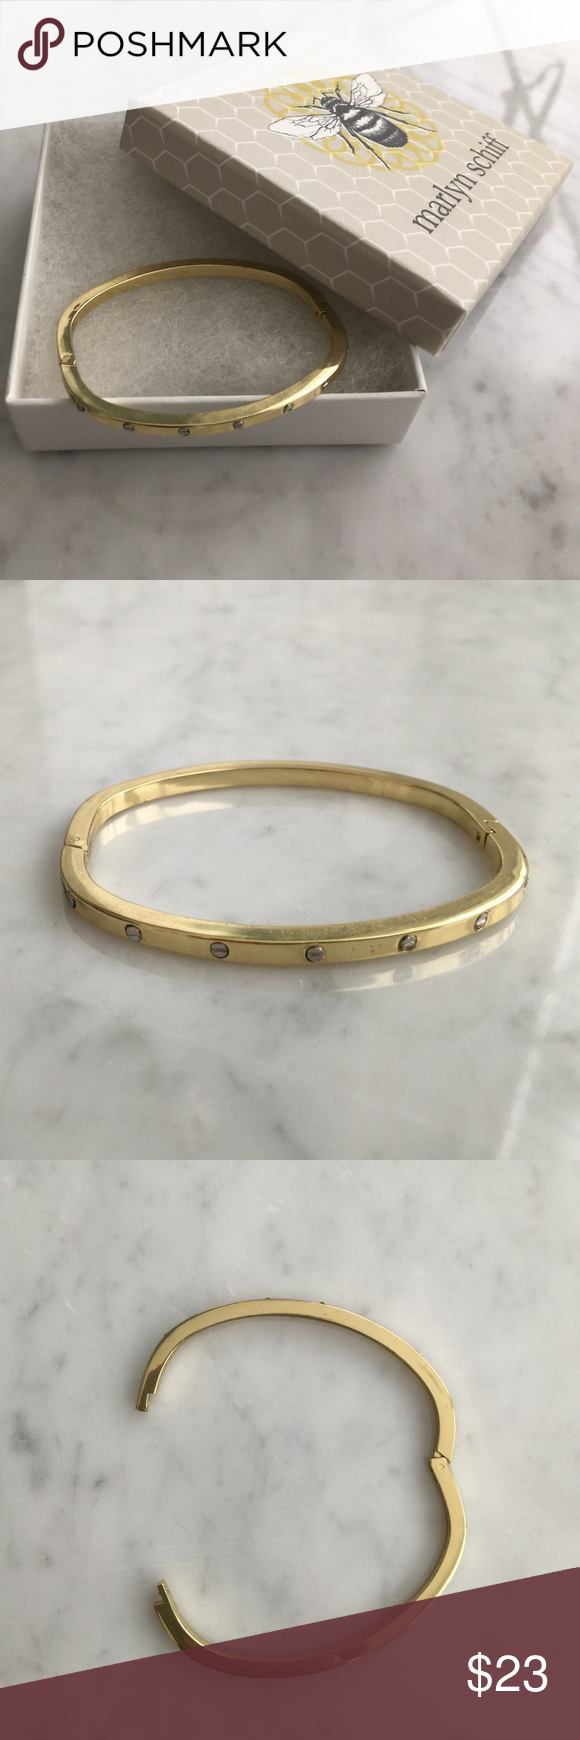 and pin head bracelet nail color bangle gold coach